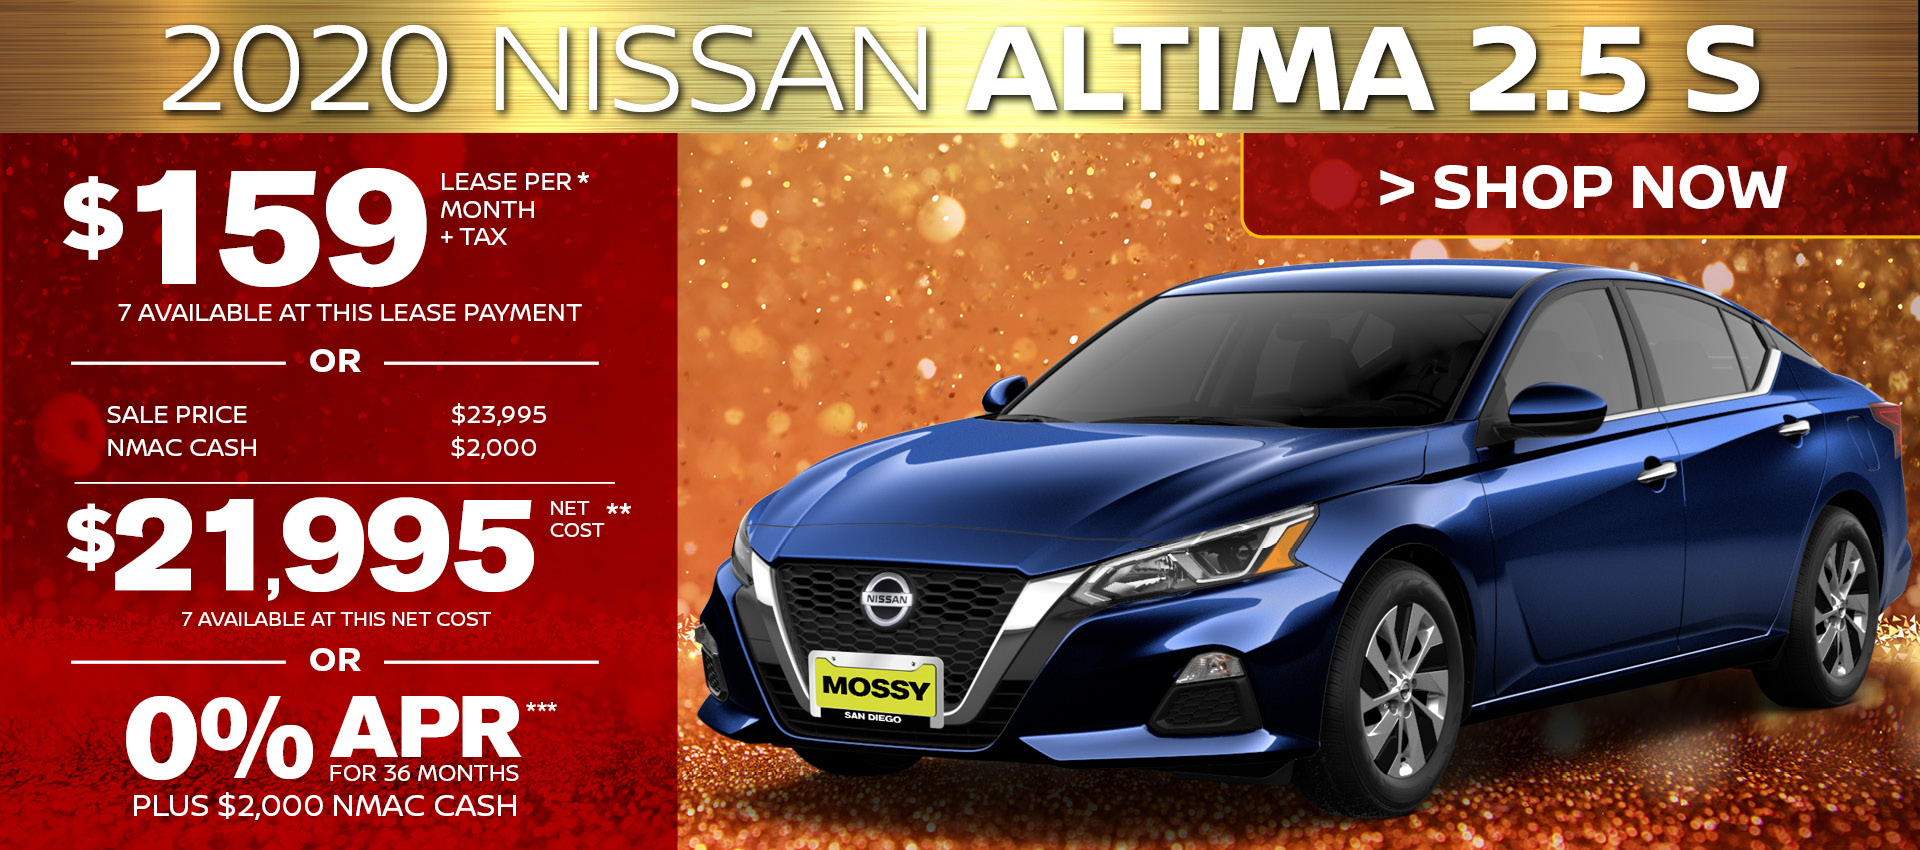 Mossy Nissan - Altima HP